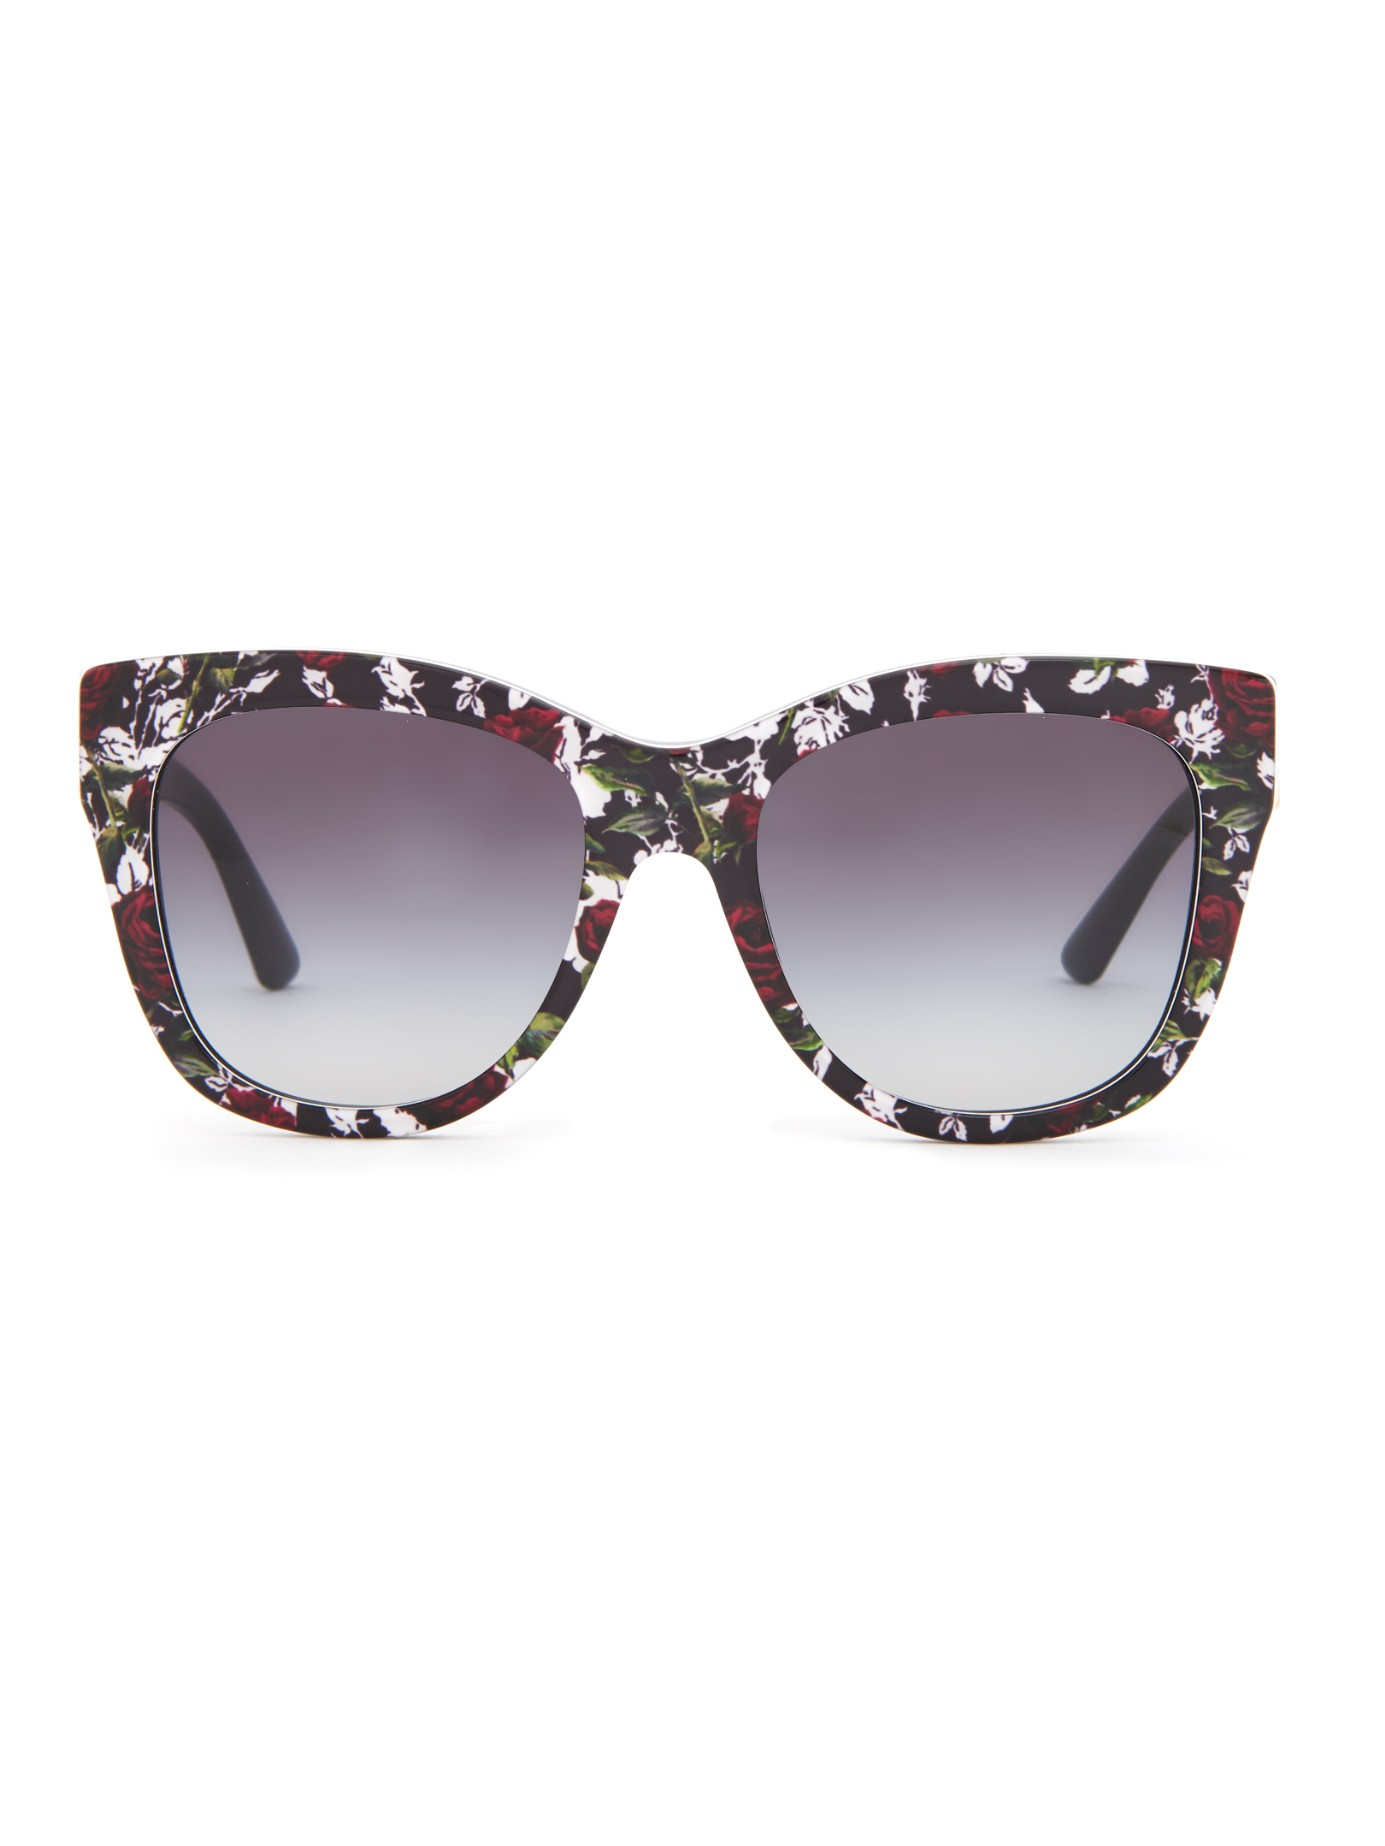 938a792c18e Lyst - Dolce   Gabbana Rose-print Sunglasses in Black